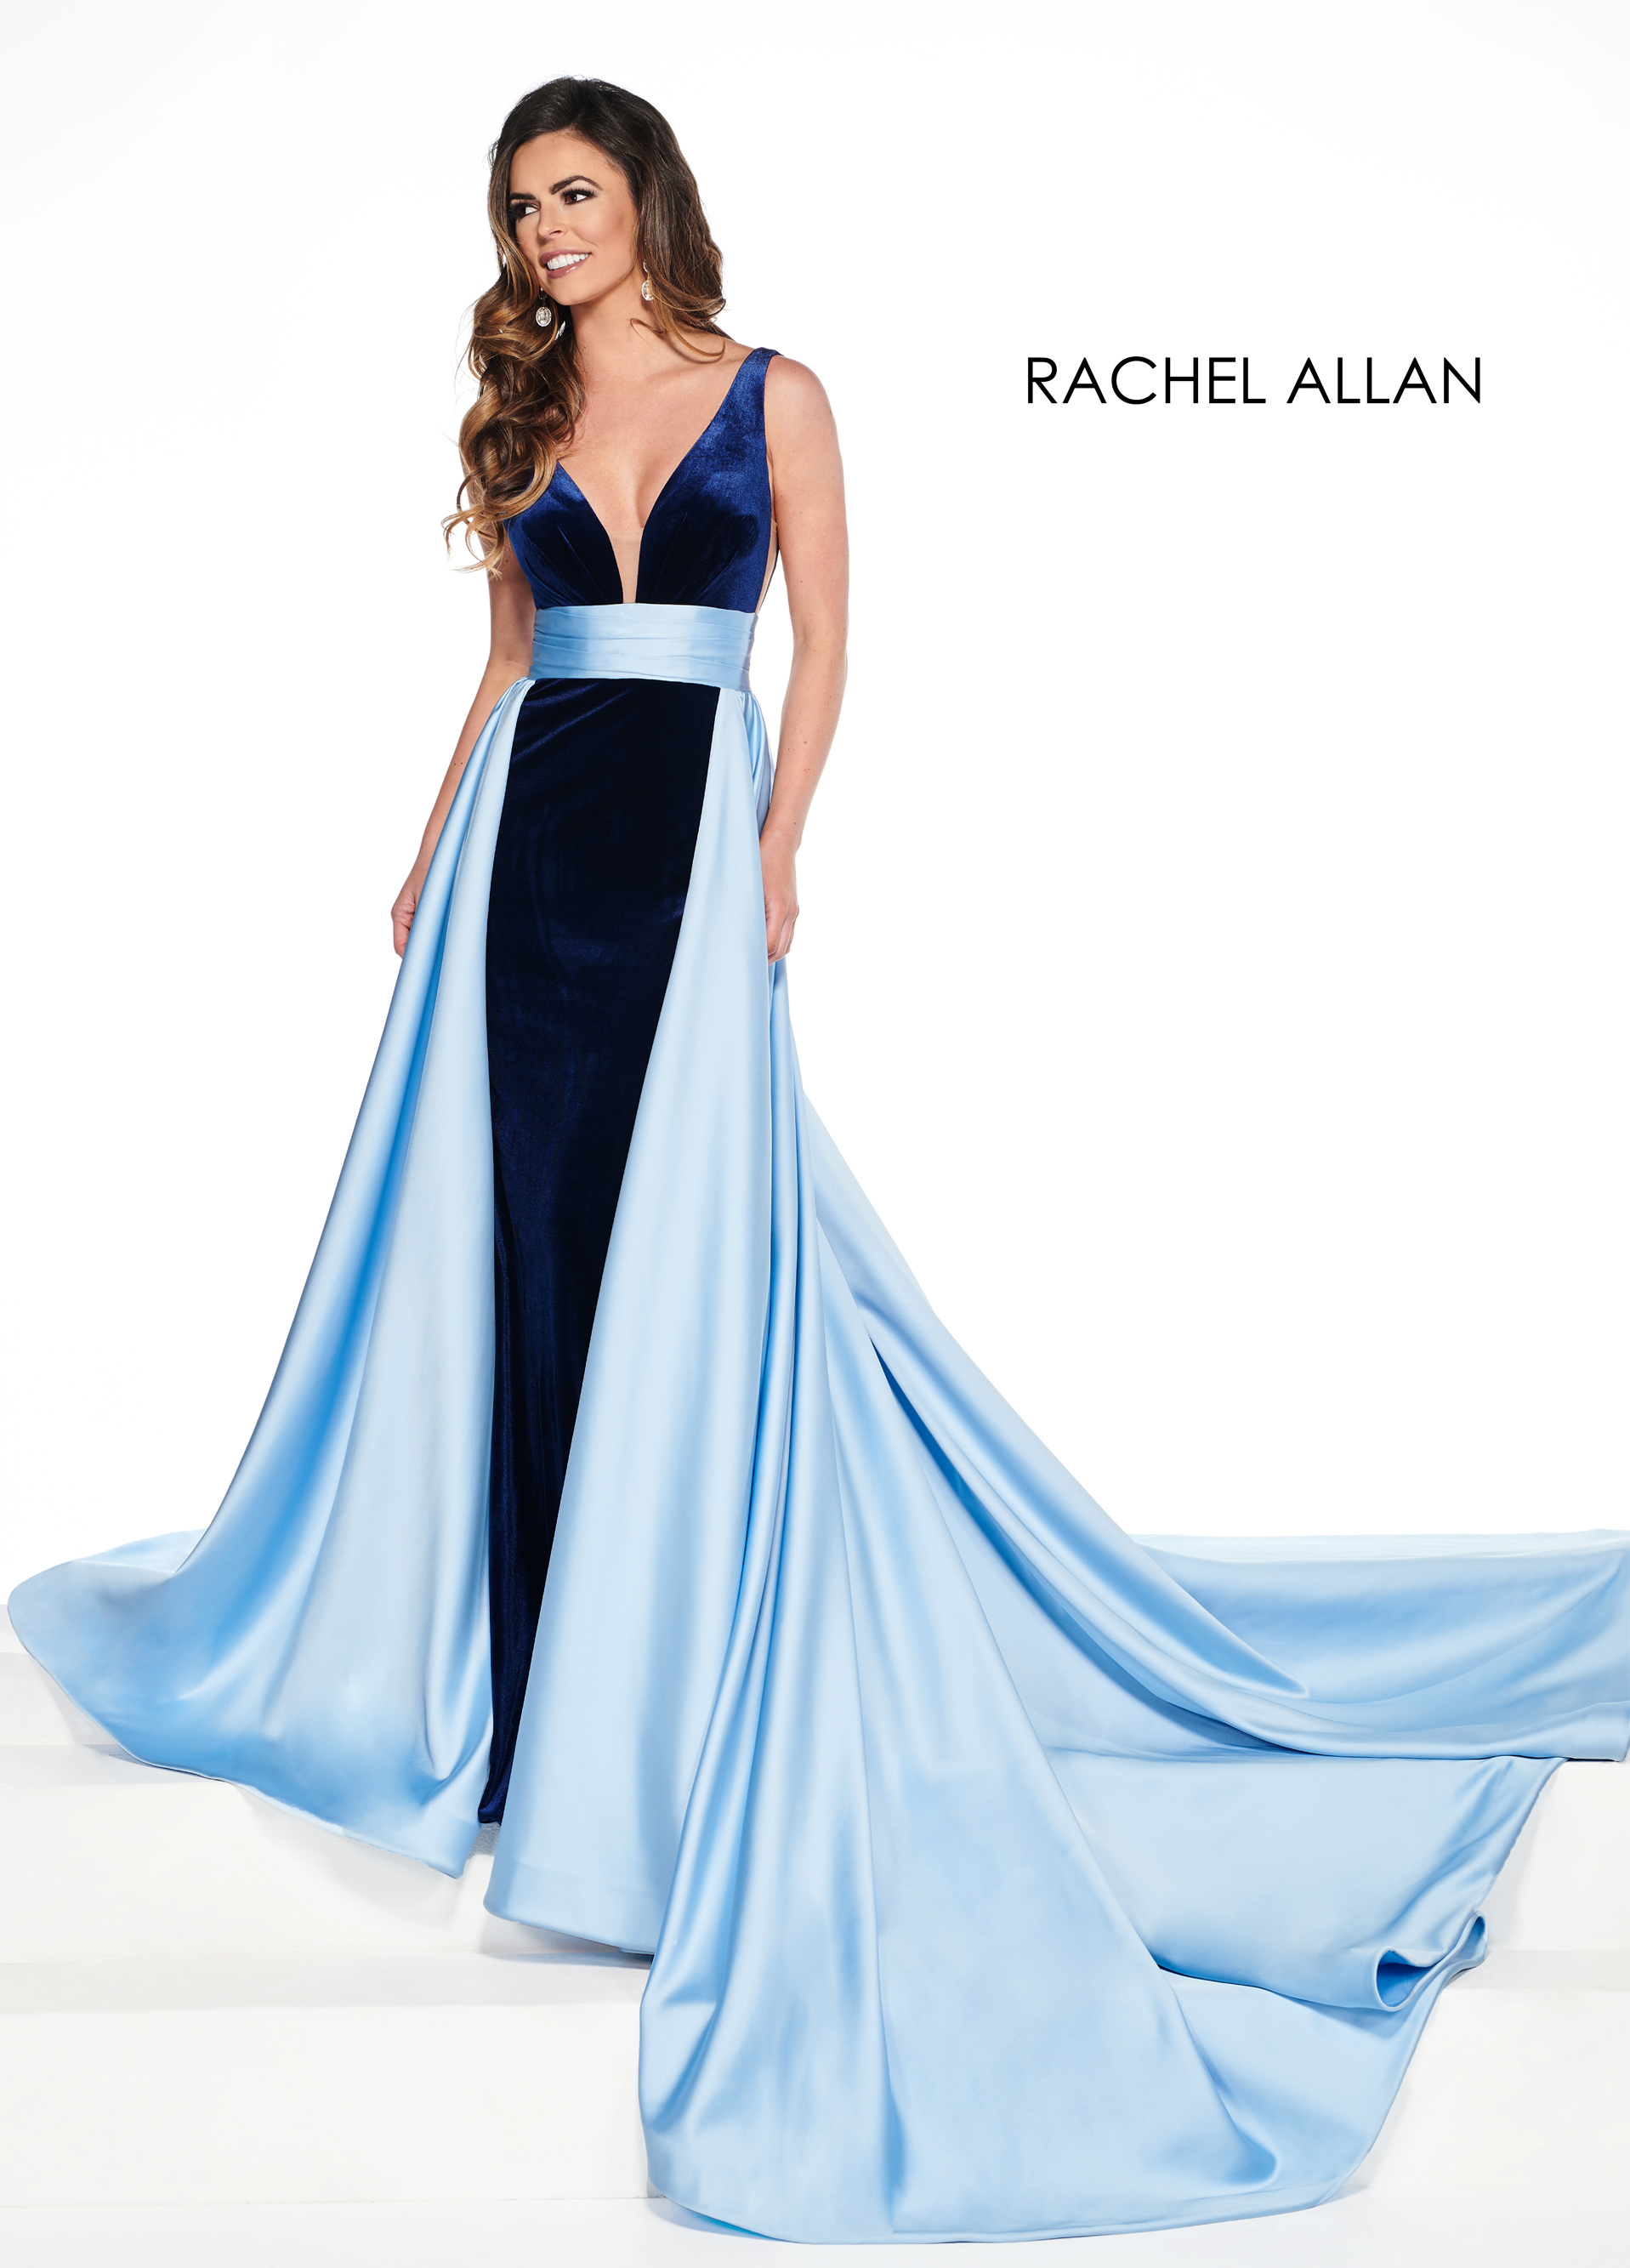 V-Neck Skirt With Overlay Pageant Dresses in Blue Color